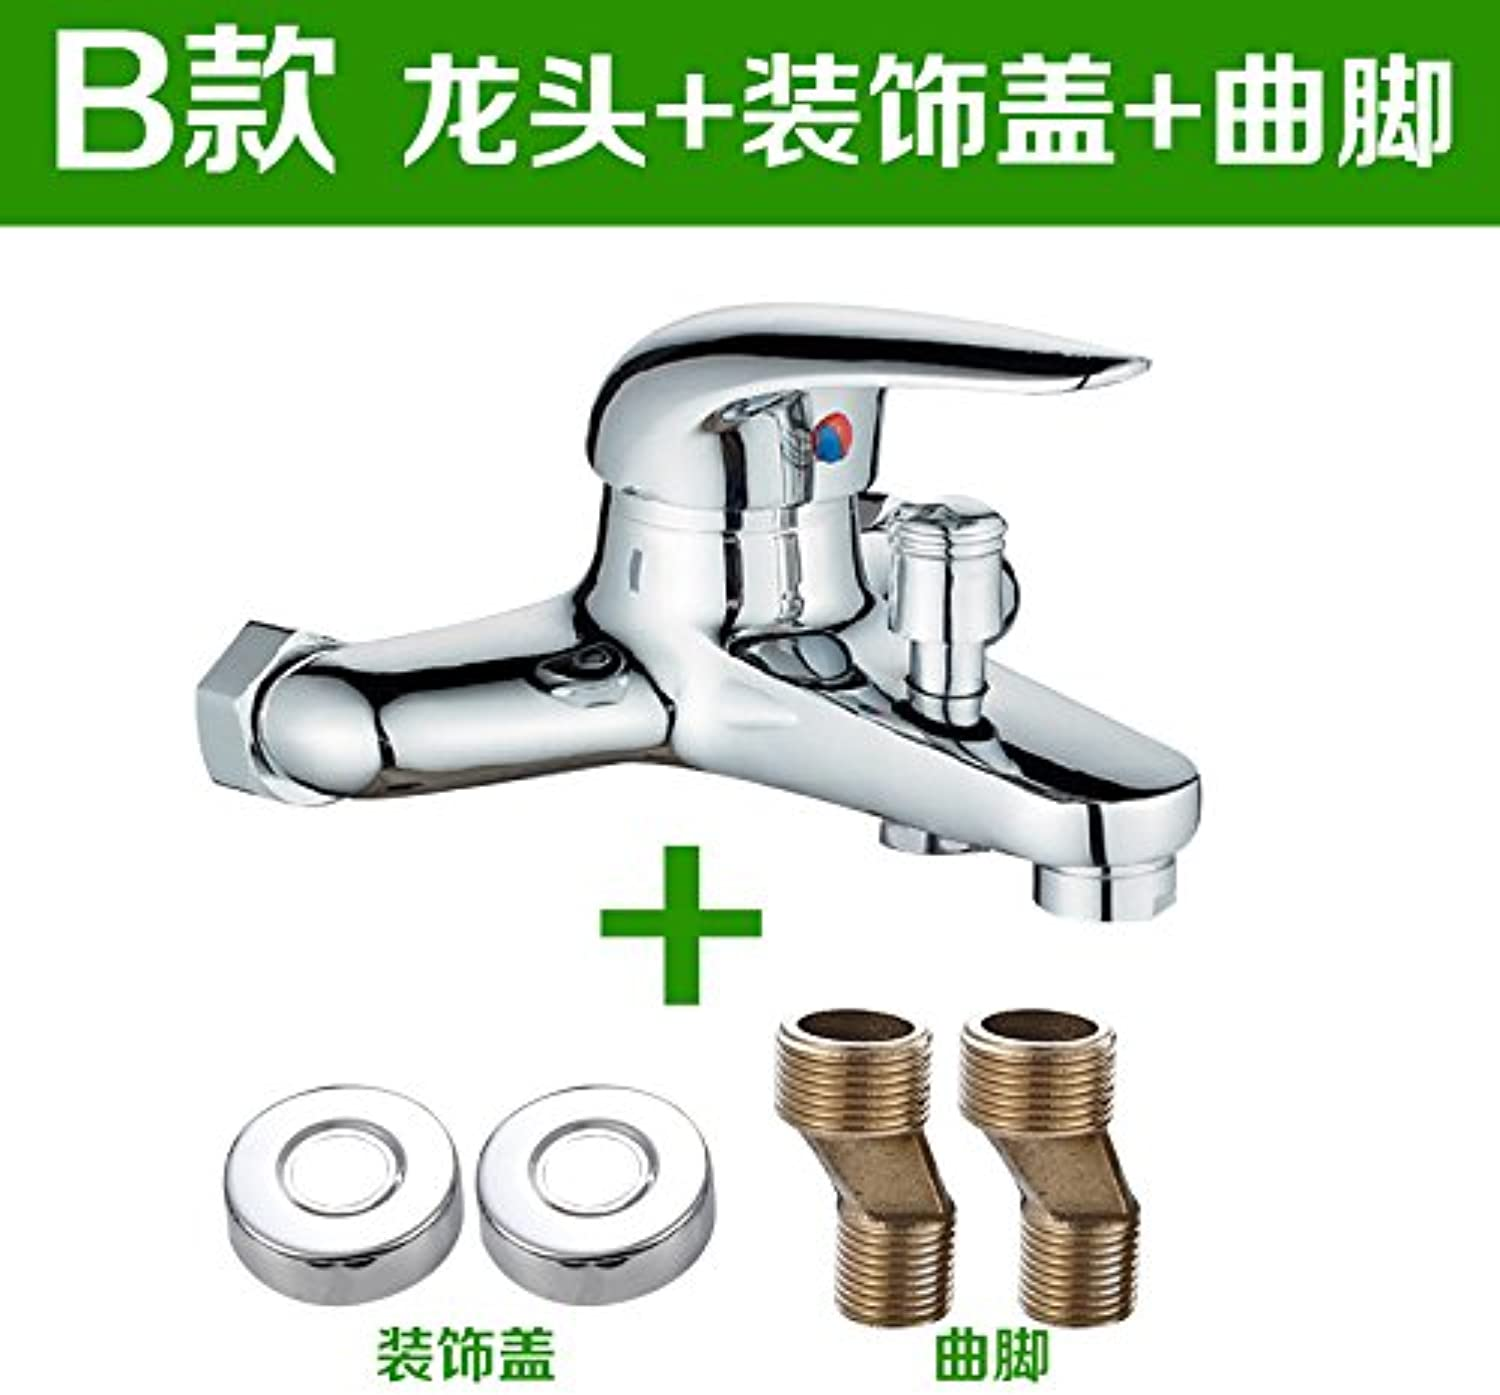 ETERNAL QUALITY Bathroom Sink Basin Tap Brass Mixer Tap Washroom Mixer Faucet The copper shower set Simple Shower Shower Faucet five function shower B common with tap wa